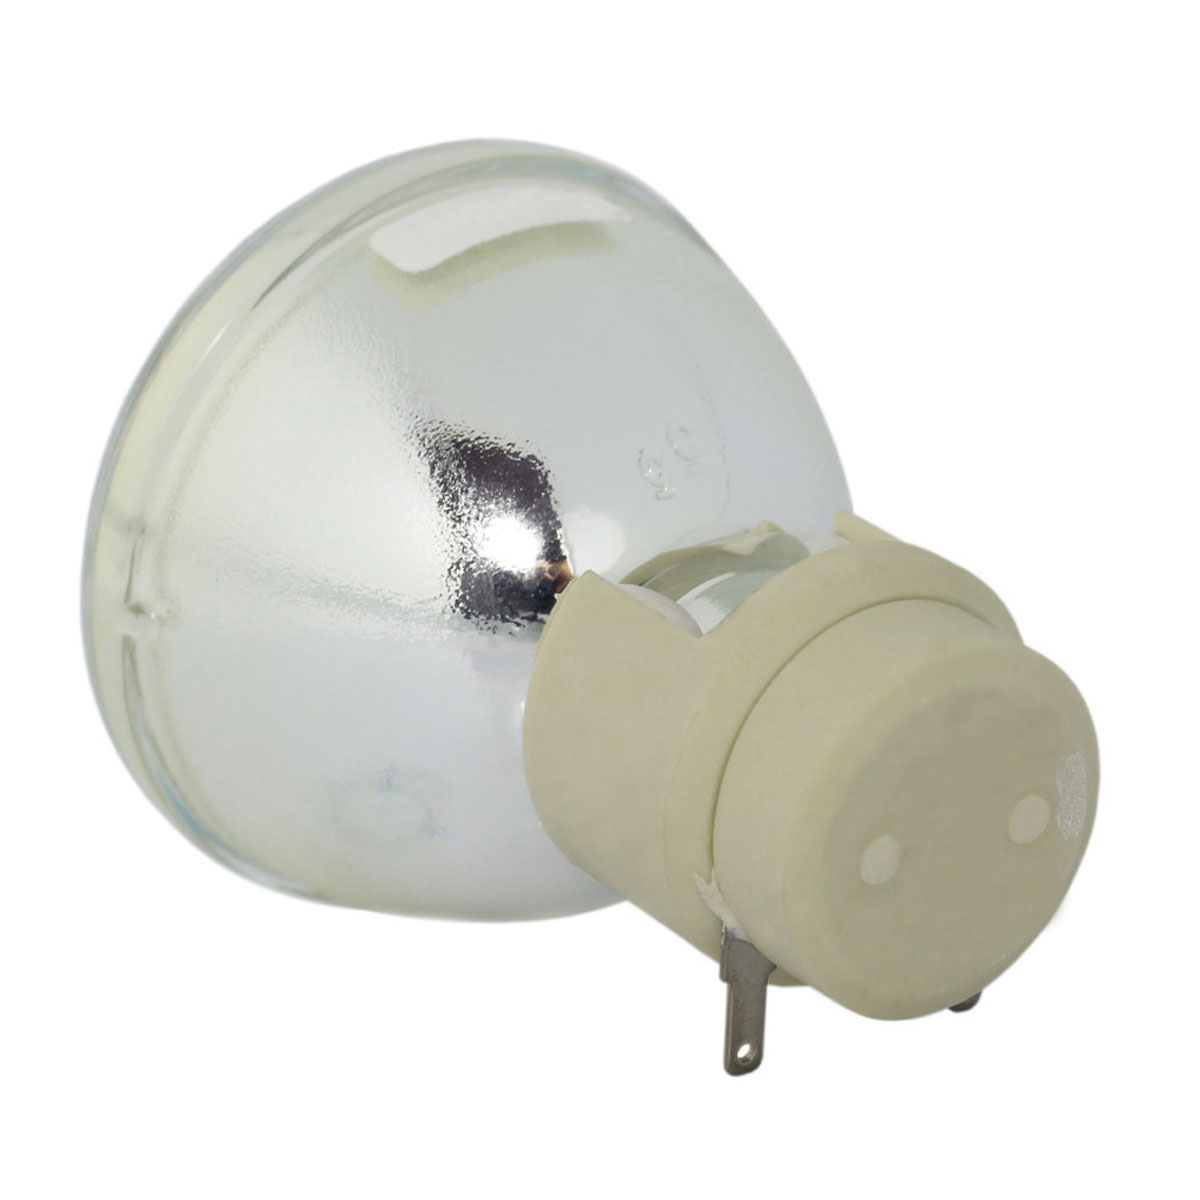 Lutema Economy for Vivitek DX813 Projector Lamp (Bulb Only) - image 2 of 5